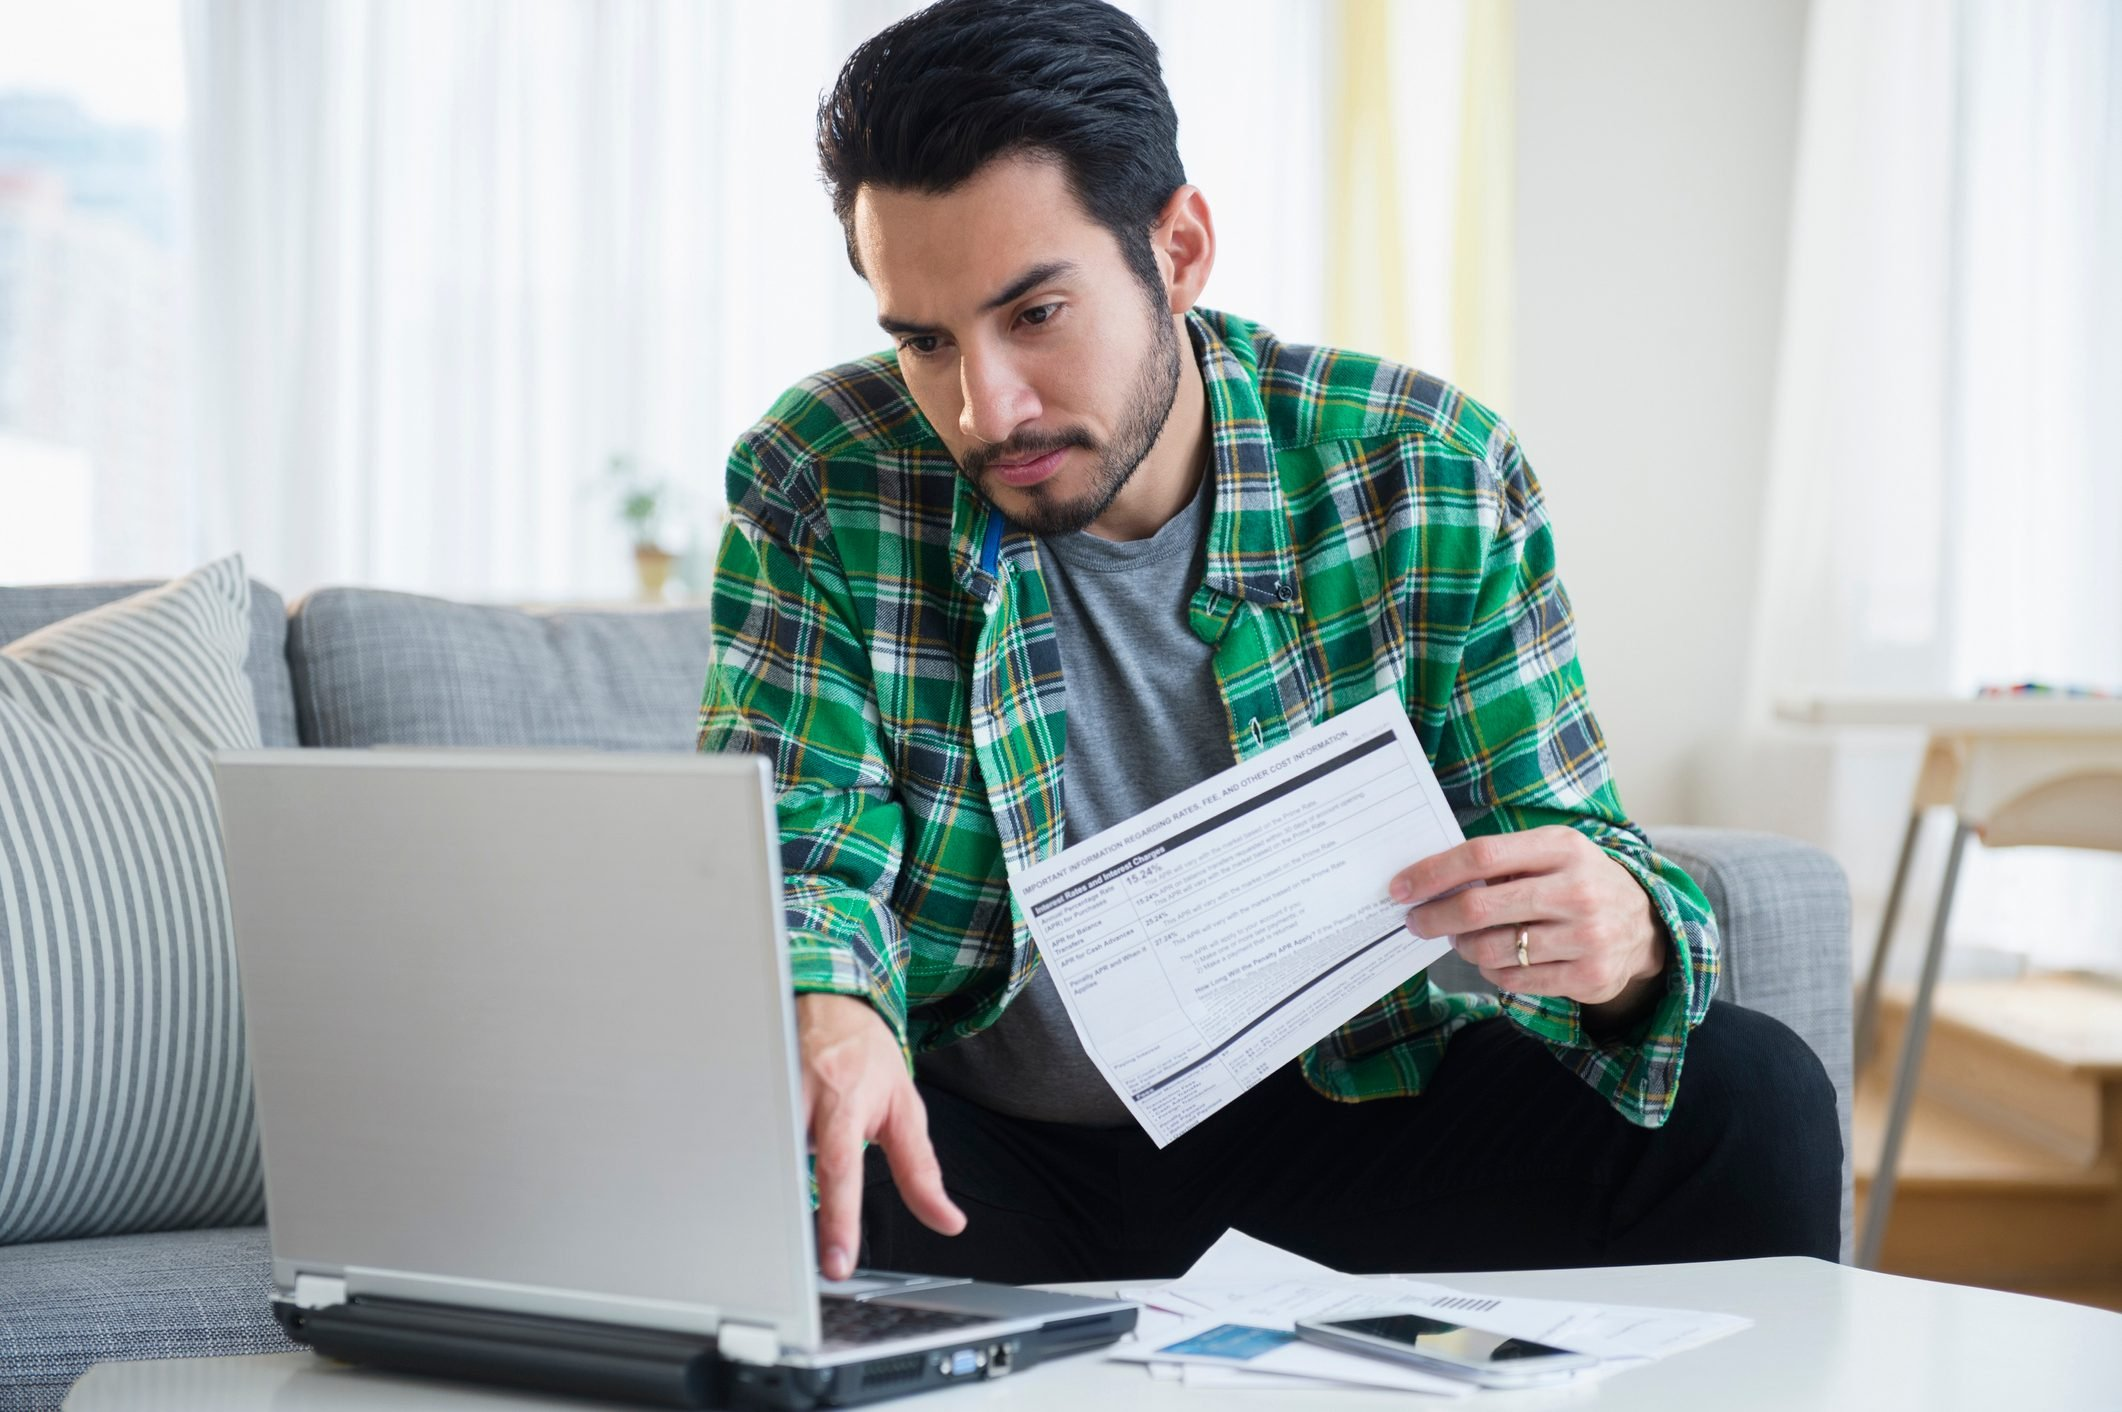 Mixed race man paying bills in living room